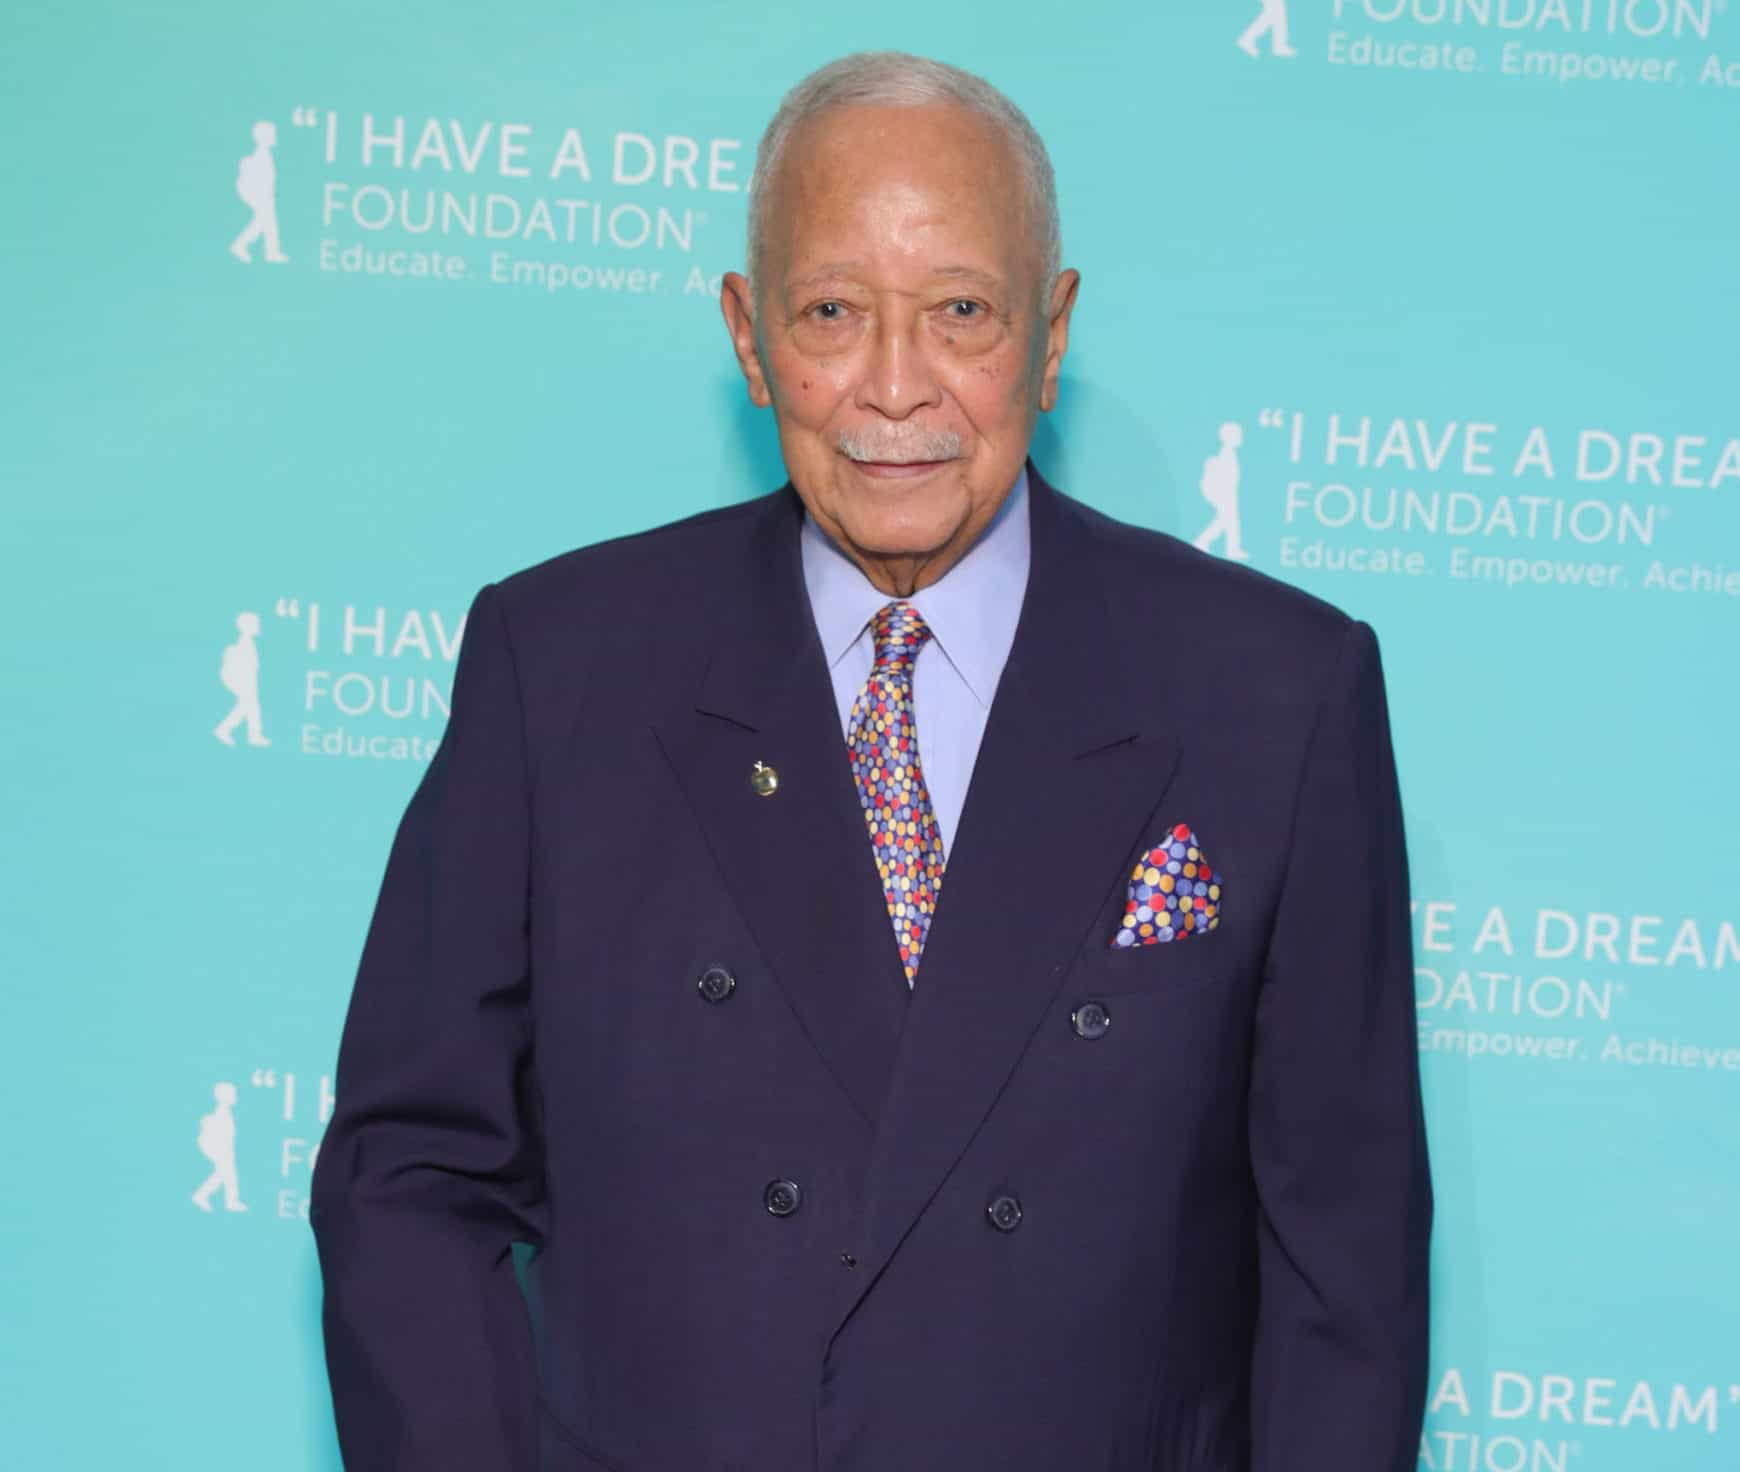 kxnjnwx ksx0hm https bbcgossip com david dinkins new york citys first black mayor passes away at the age of 93